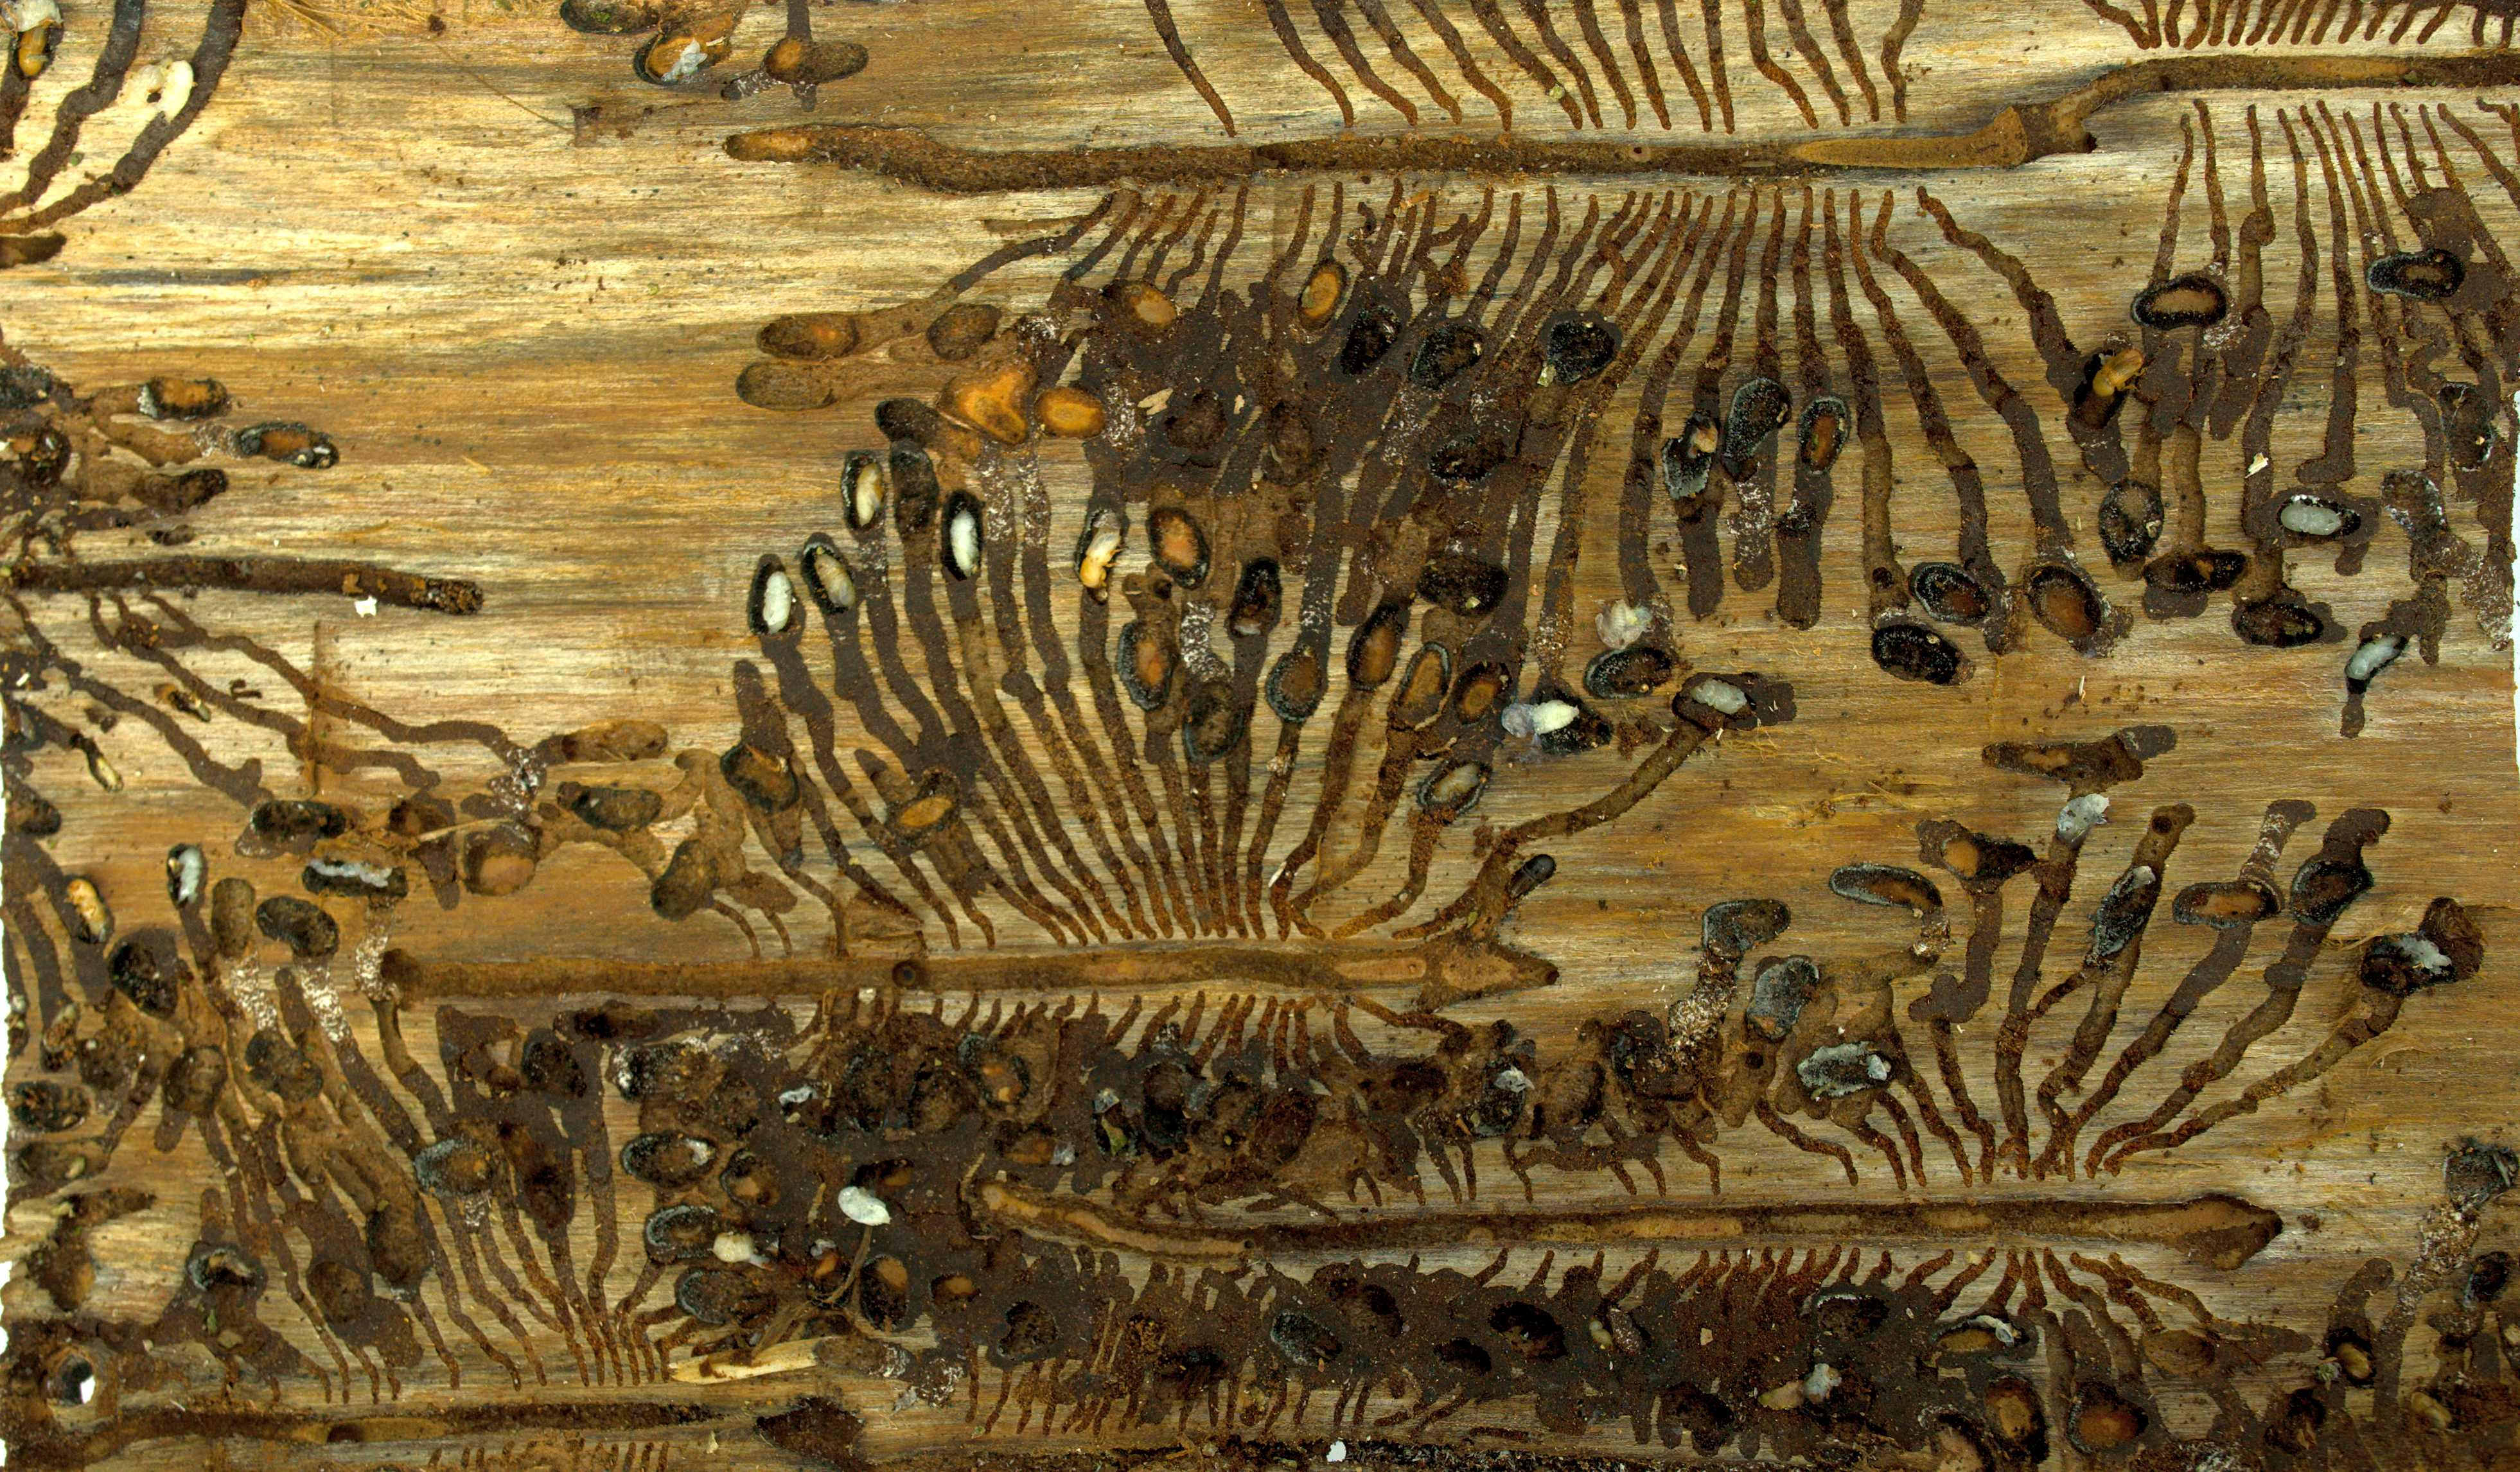 Galleries of the spruce bark beetle Ips typographus with larvae. Photo: Roman Modlinger.